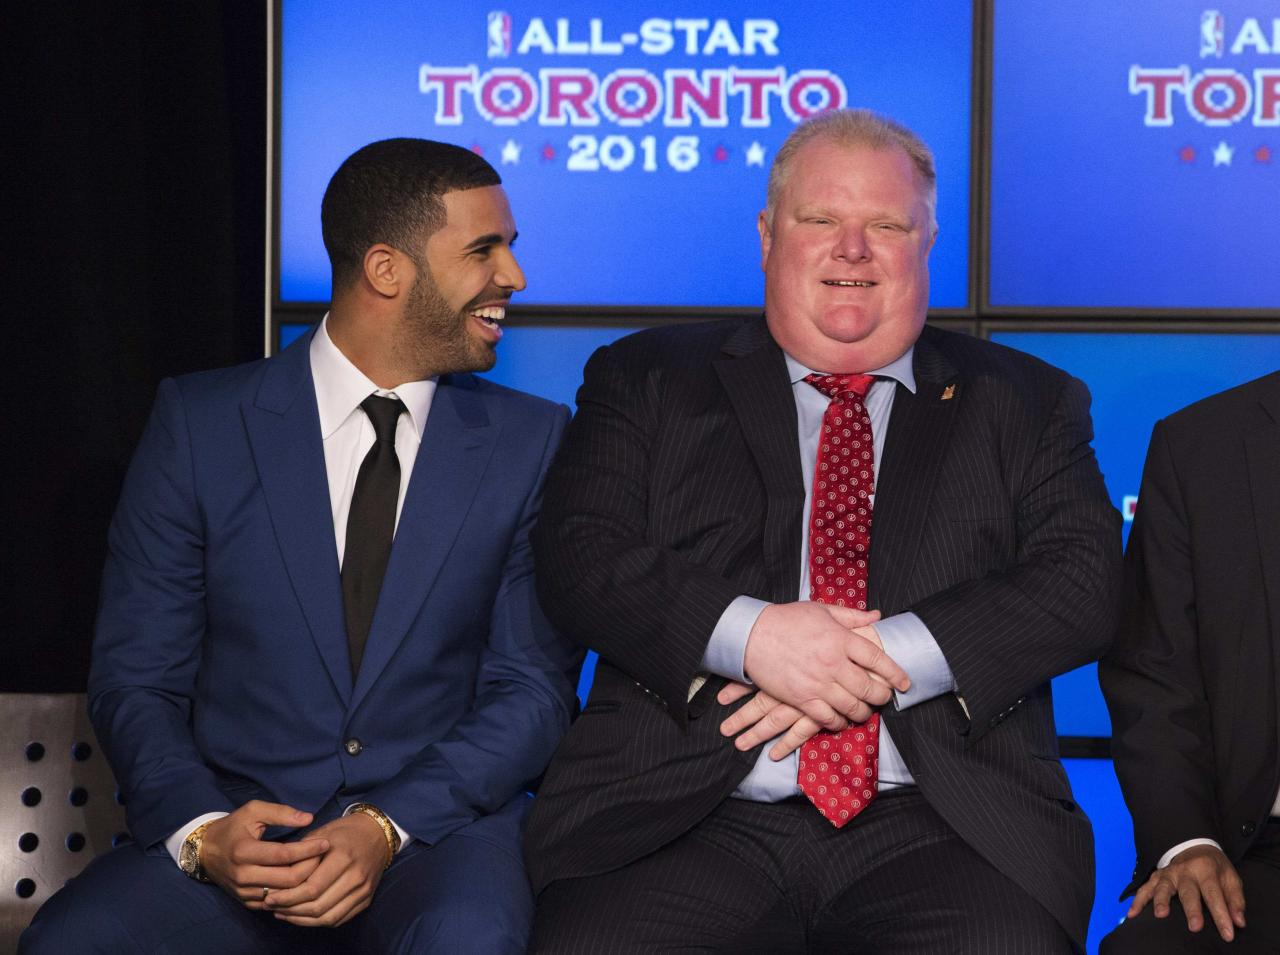 Rapper Drake (L) sits with Toronto Mayor Rob Ford during an announcement that the Toronto Raptors will host the 2016 NBA All-Star game in Toronto, September 30, 2013. Toronto was selected as the host of the National Basketball Association's (NBA) 2016 All-Star Game, marking the first time the showcase event will be held outside of the United States, the league said on Monday. REUTERS/Mark Blinch (CANADA - Tags: SPORT BASKETBALL ENTERTAINMENT POLITICS)